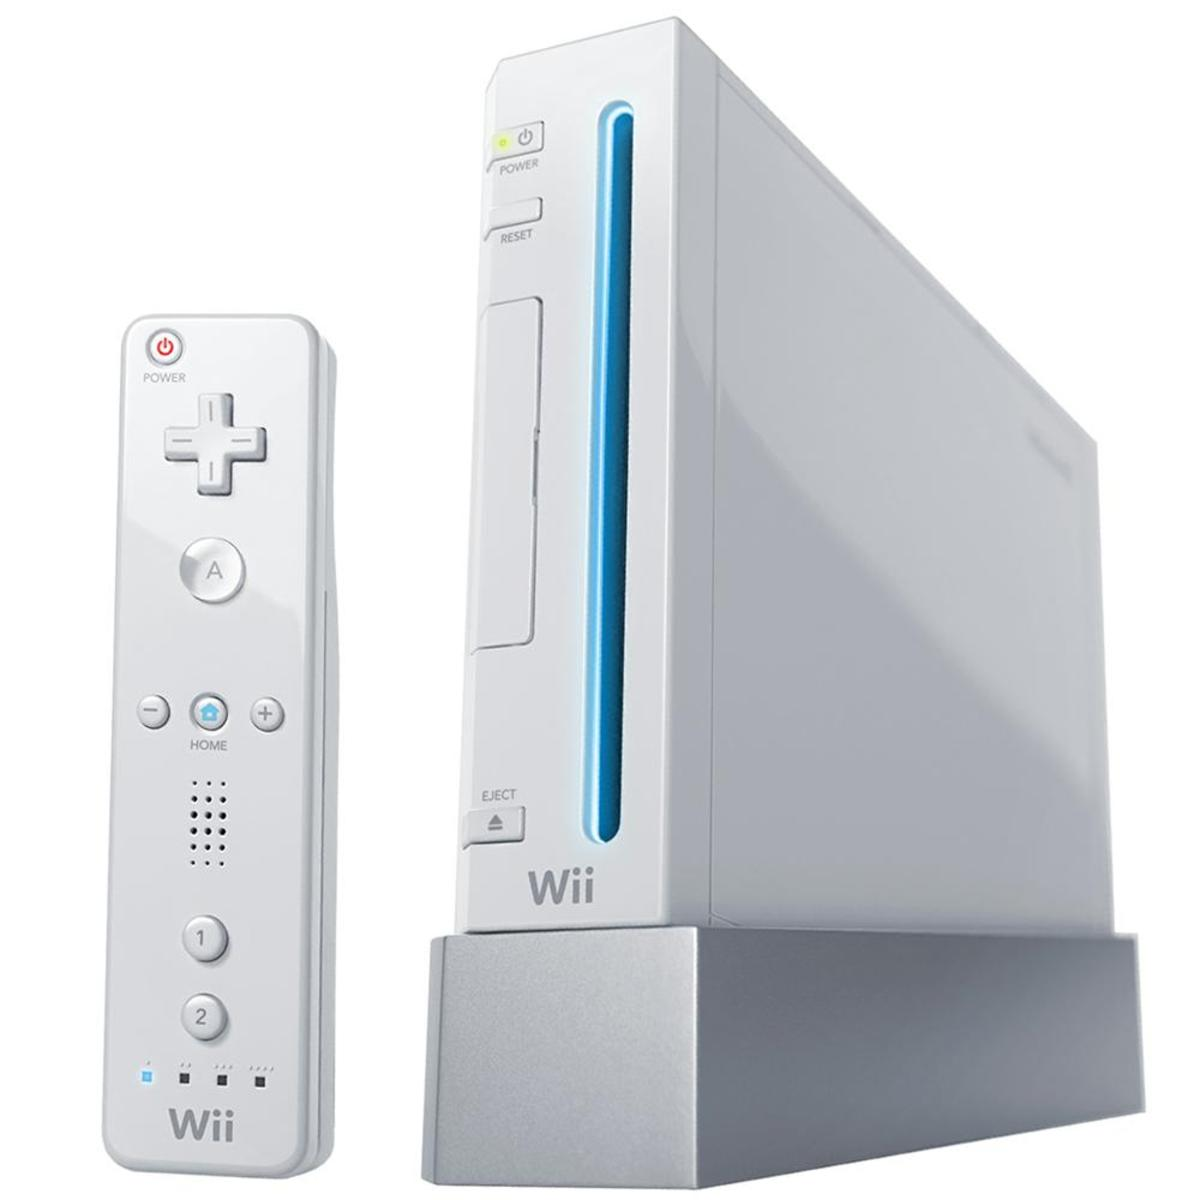 wii controller diagram  wii  free engine image for user